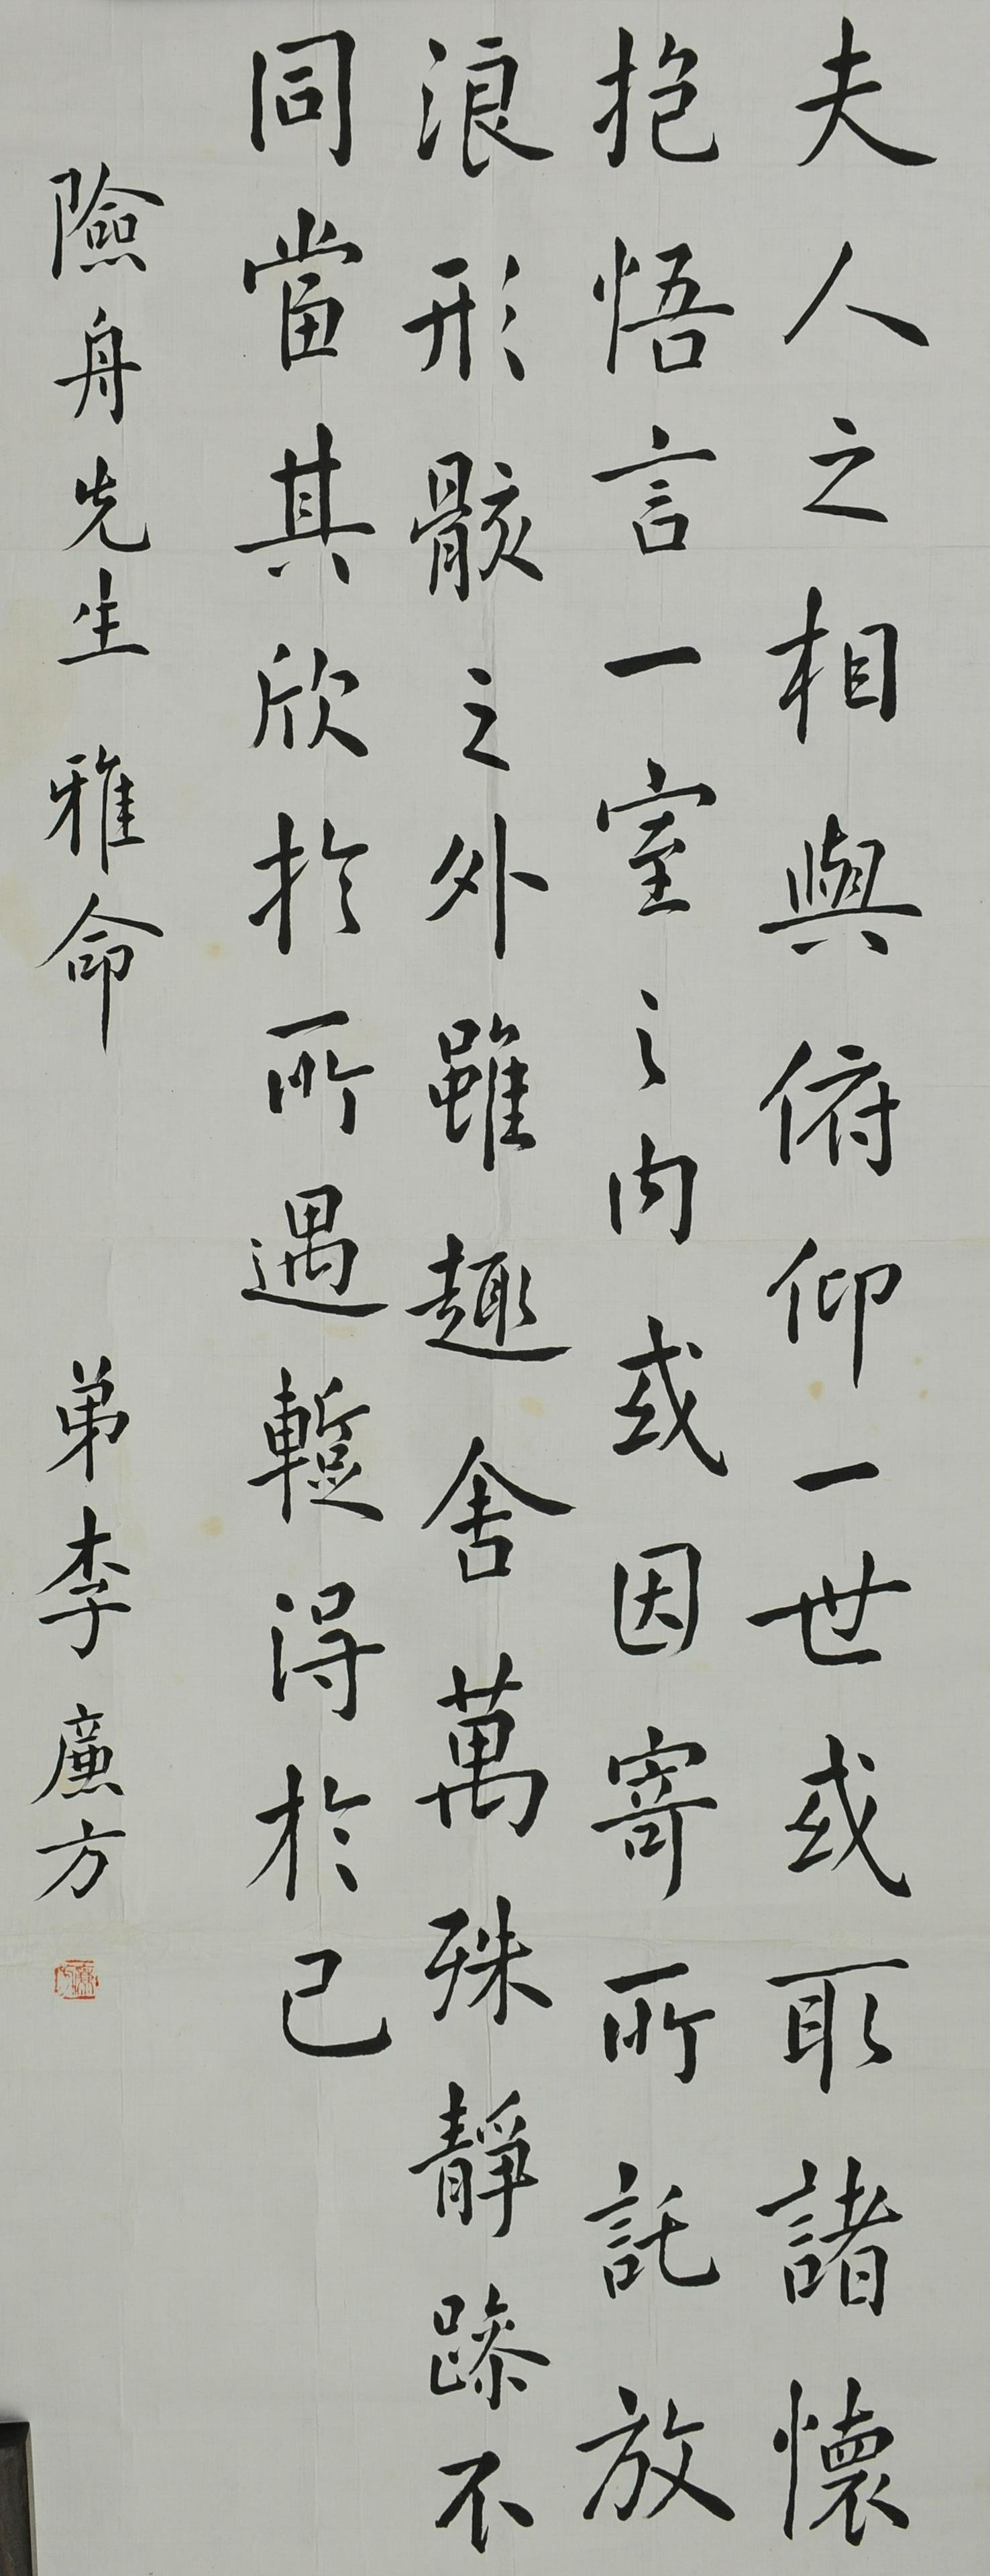 Calligraphy by Li Lianfang given to Xian Zhou